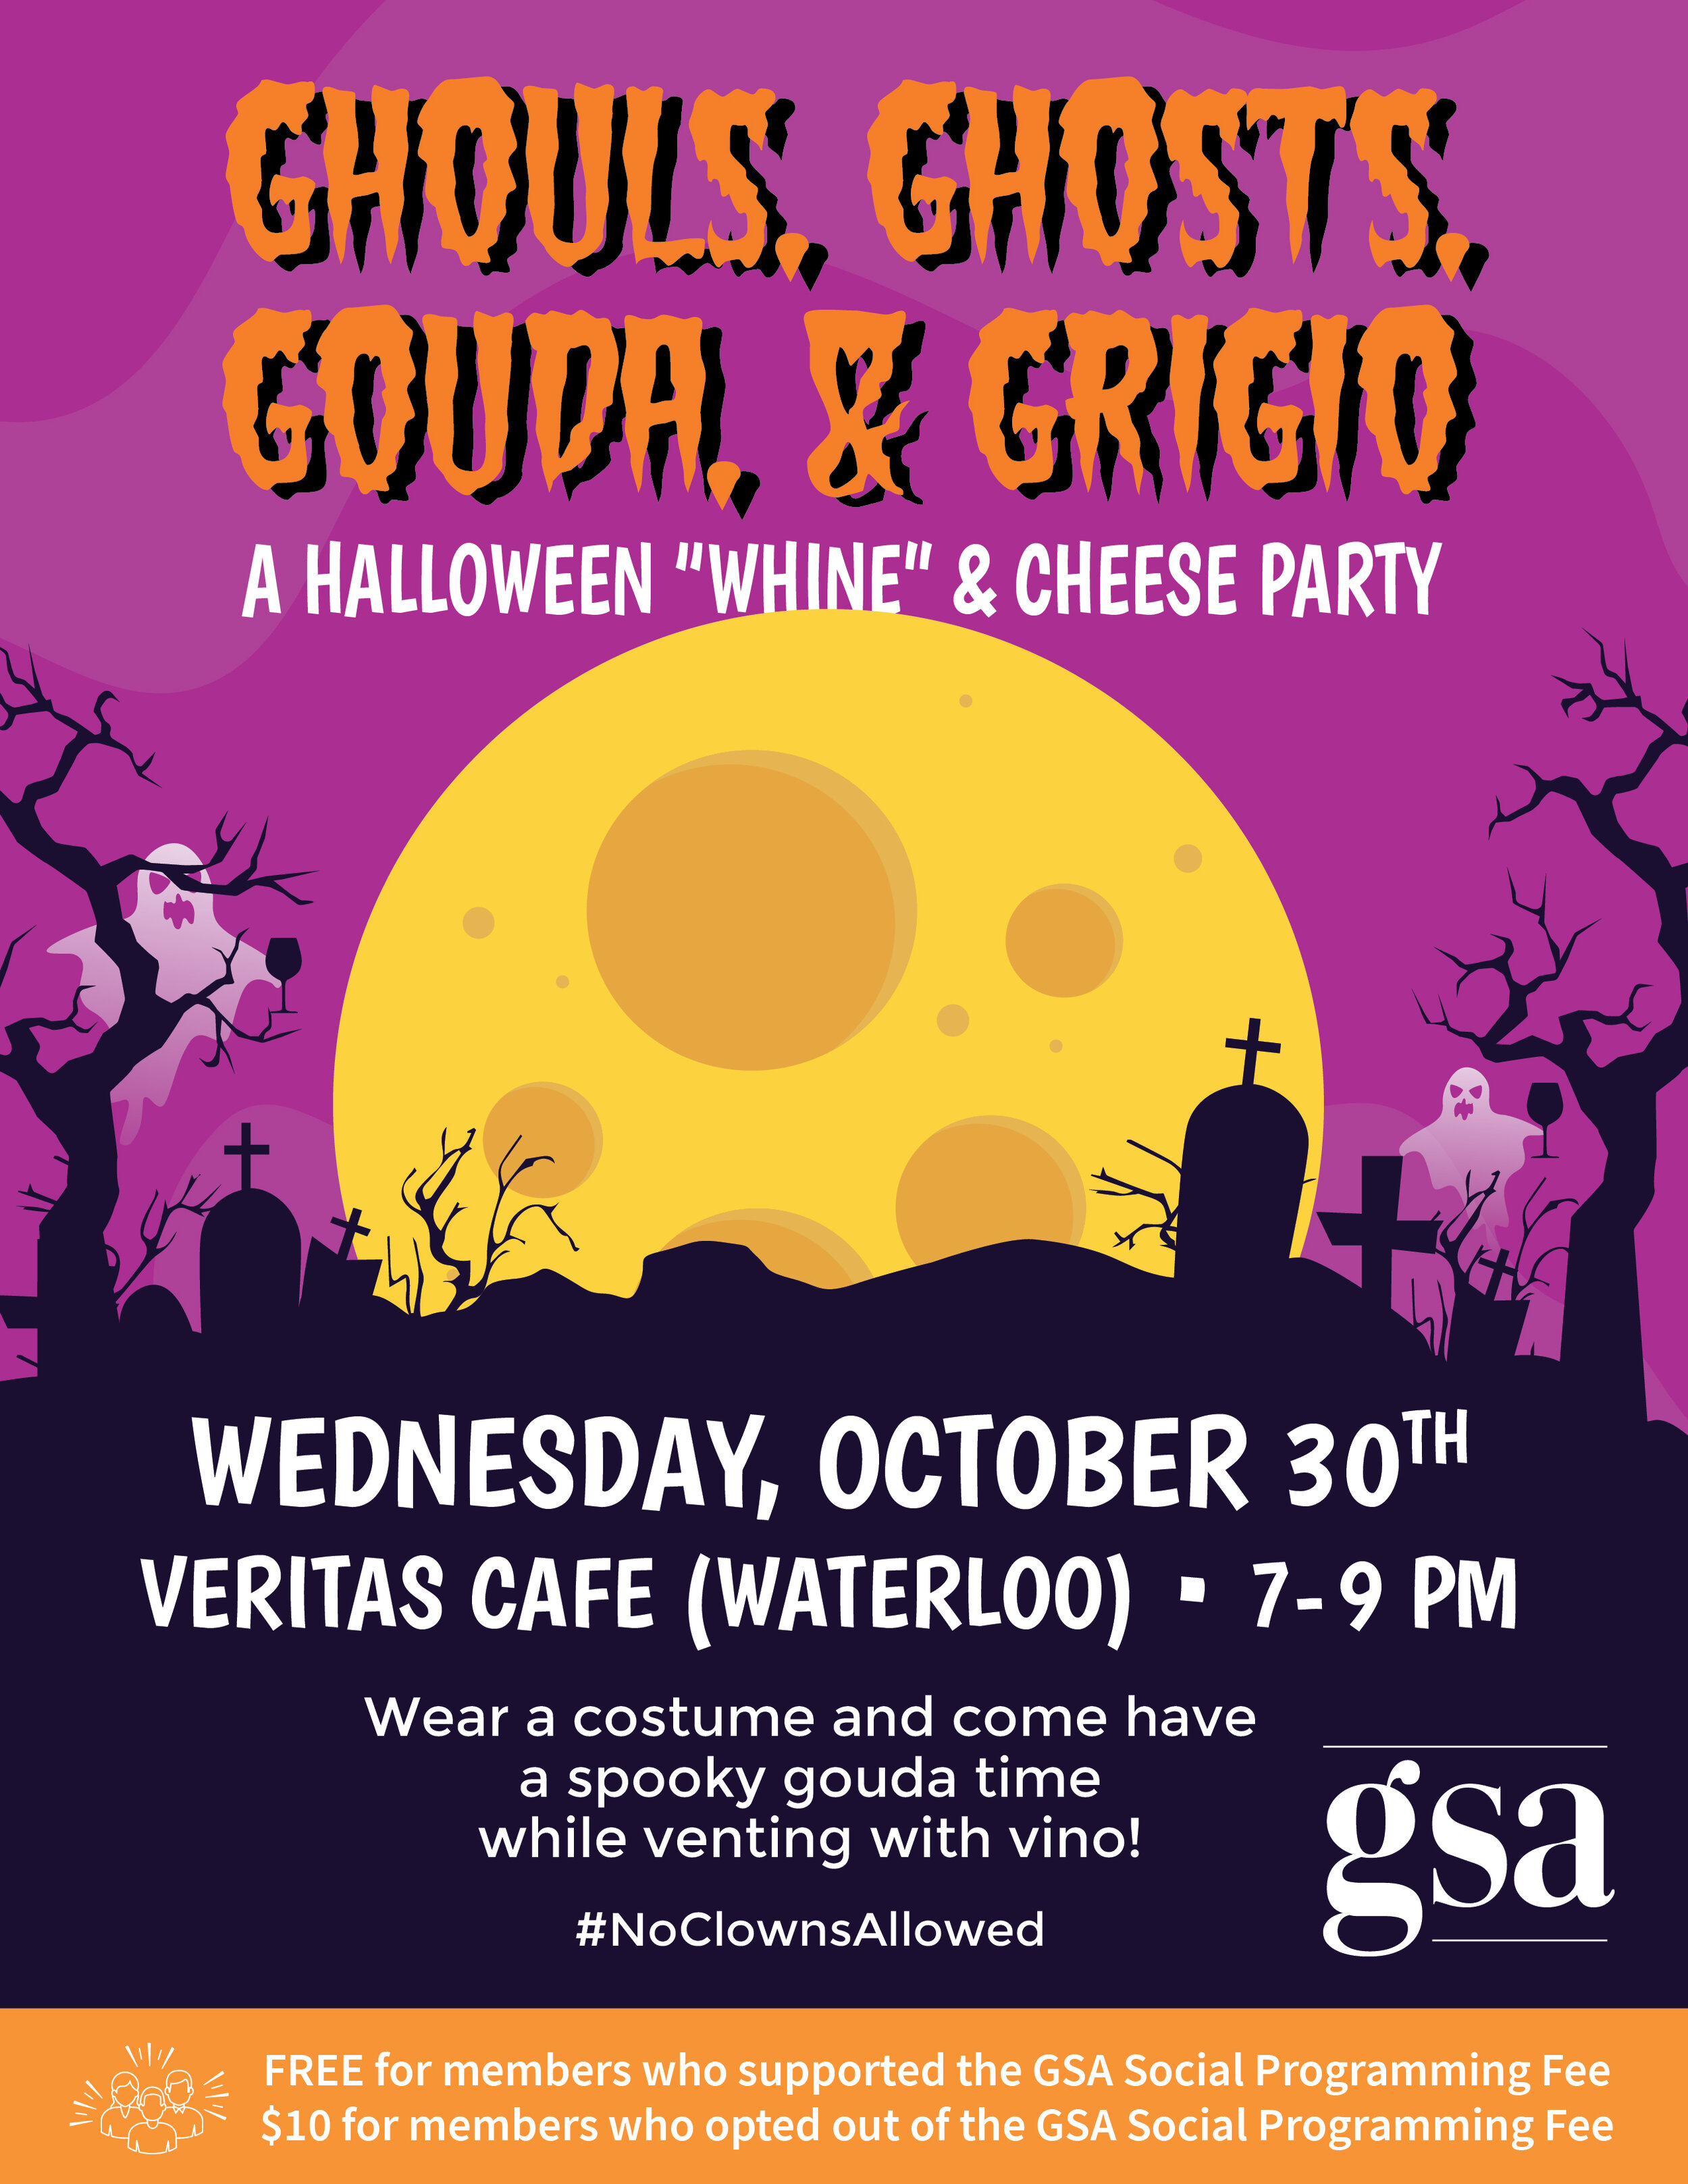 """Ghouls, ghosts, gouda, & grigio: a halloween """"whine"""" & cheese party. Wednesday, October 30th in Veritas Cafe (Waterloo) from 7-9 PM. Wear a costume and come have a spooky gouda time while venting with vino! #NoClownsAllowed FREE for members who supported the GSA Social Programming Fee. $10 for members who opted out of the GSA Social Programming Fee."""